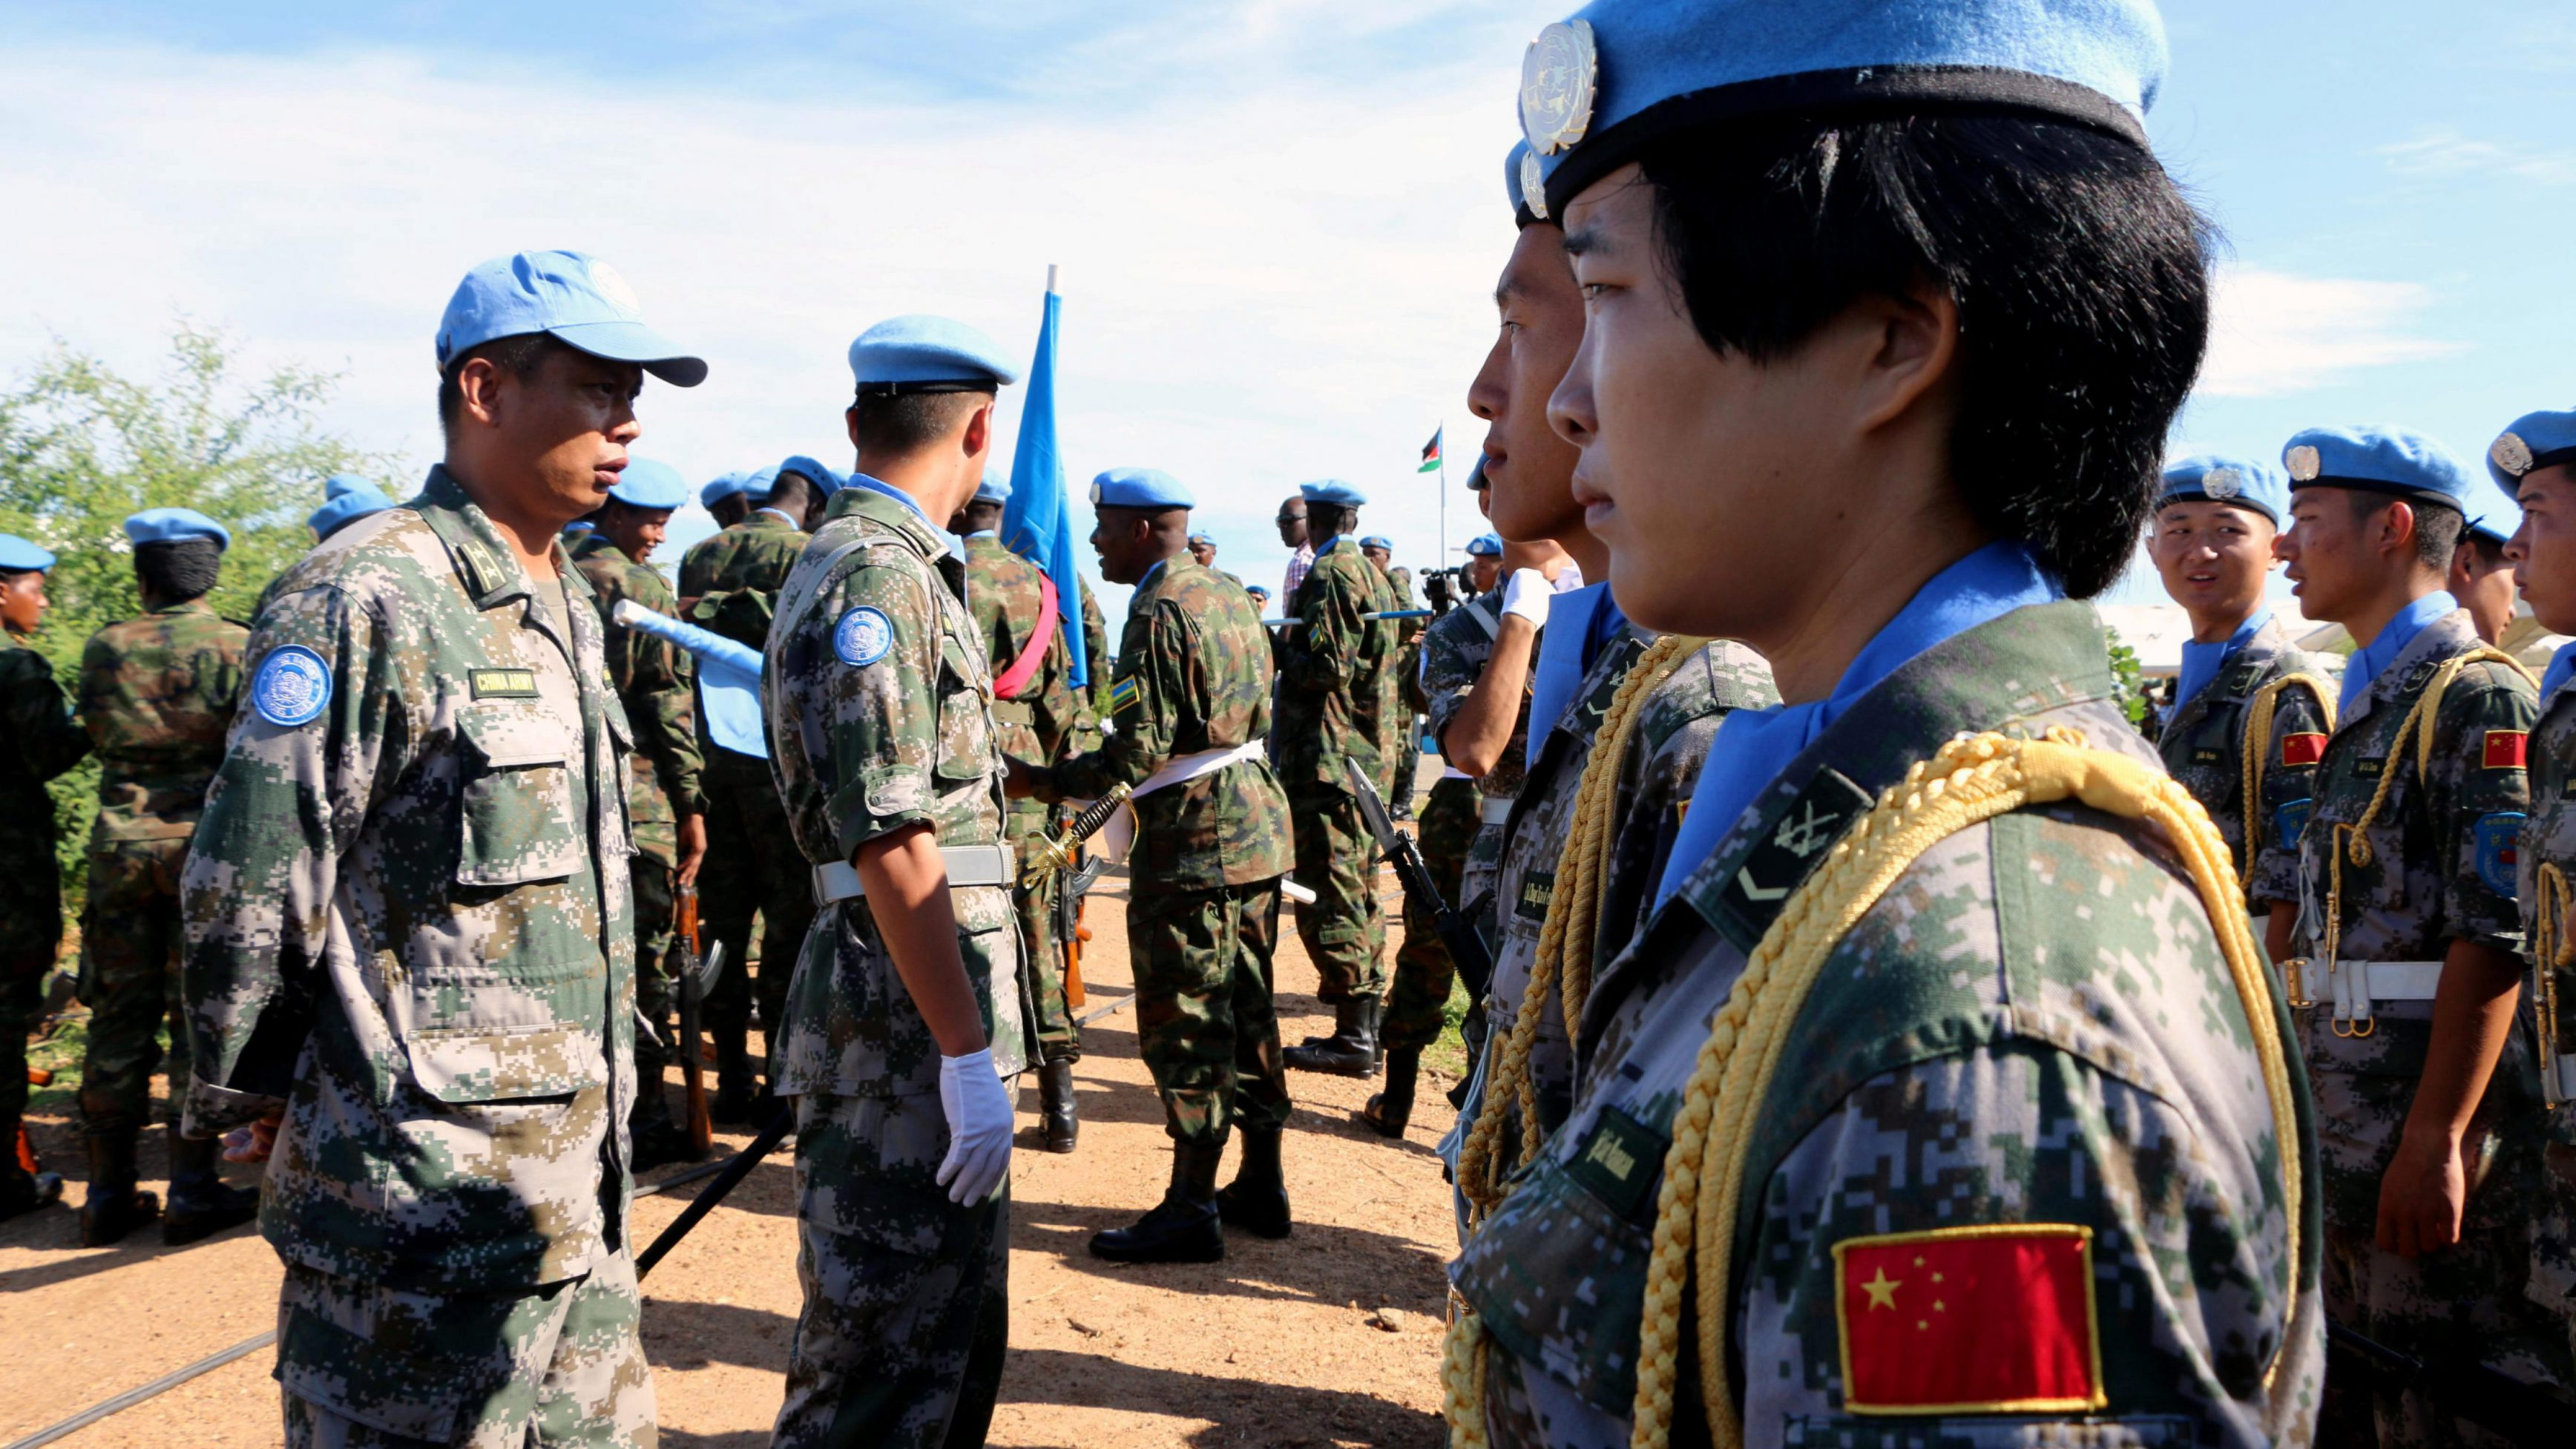 Chinese Peacekeepers in the United Nations Mission to South Sudan (UNMISS) parade during the International Day of United Nations Peacekeepers in Juba, South Sudan May 29, 2017.